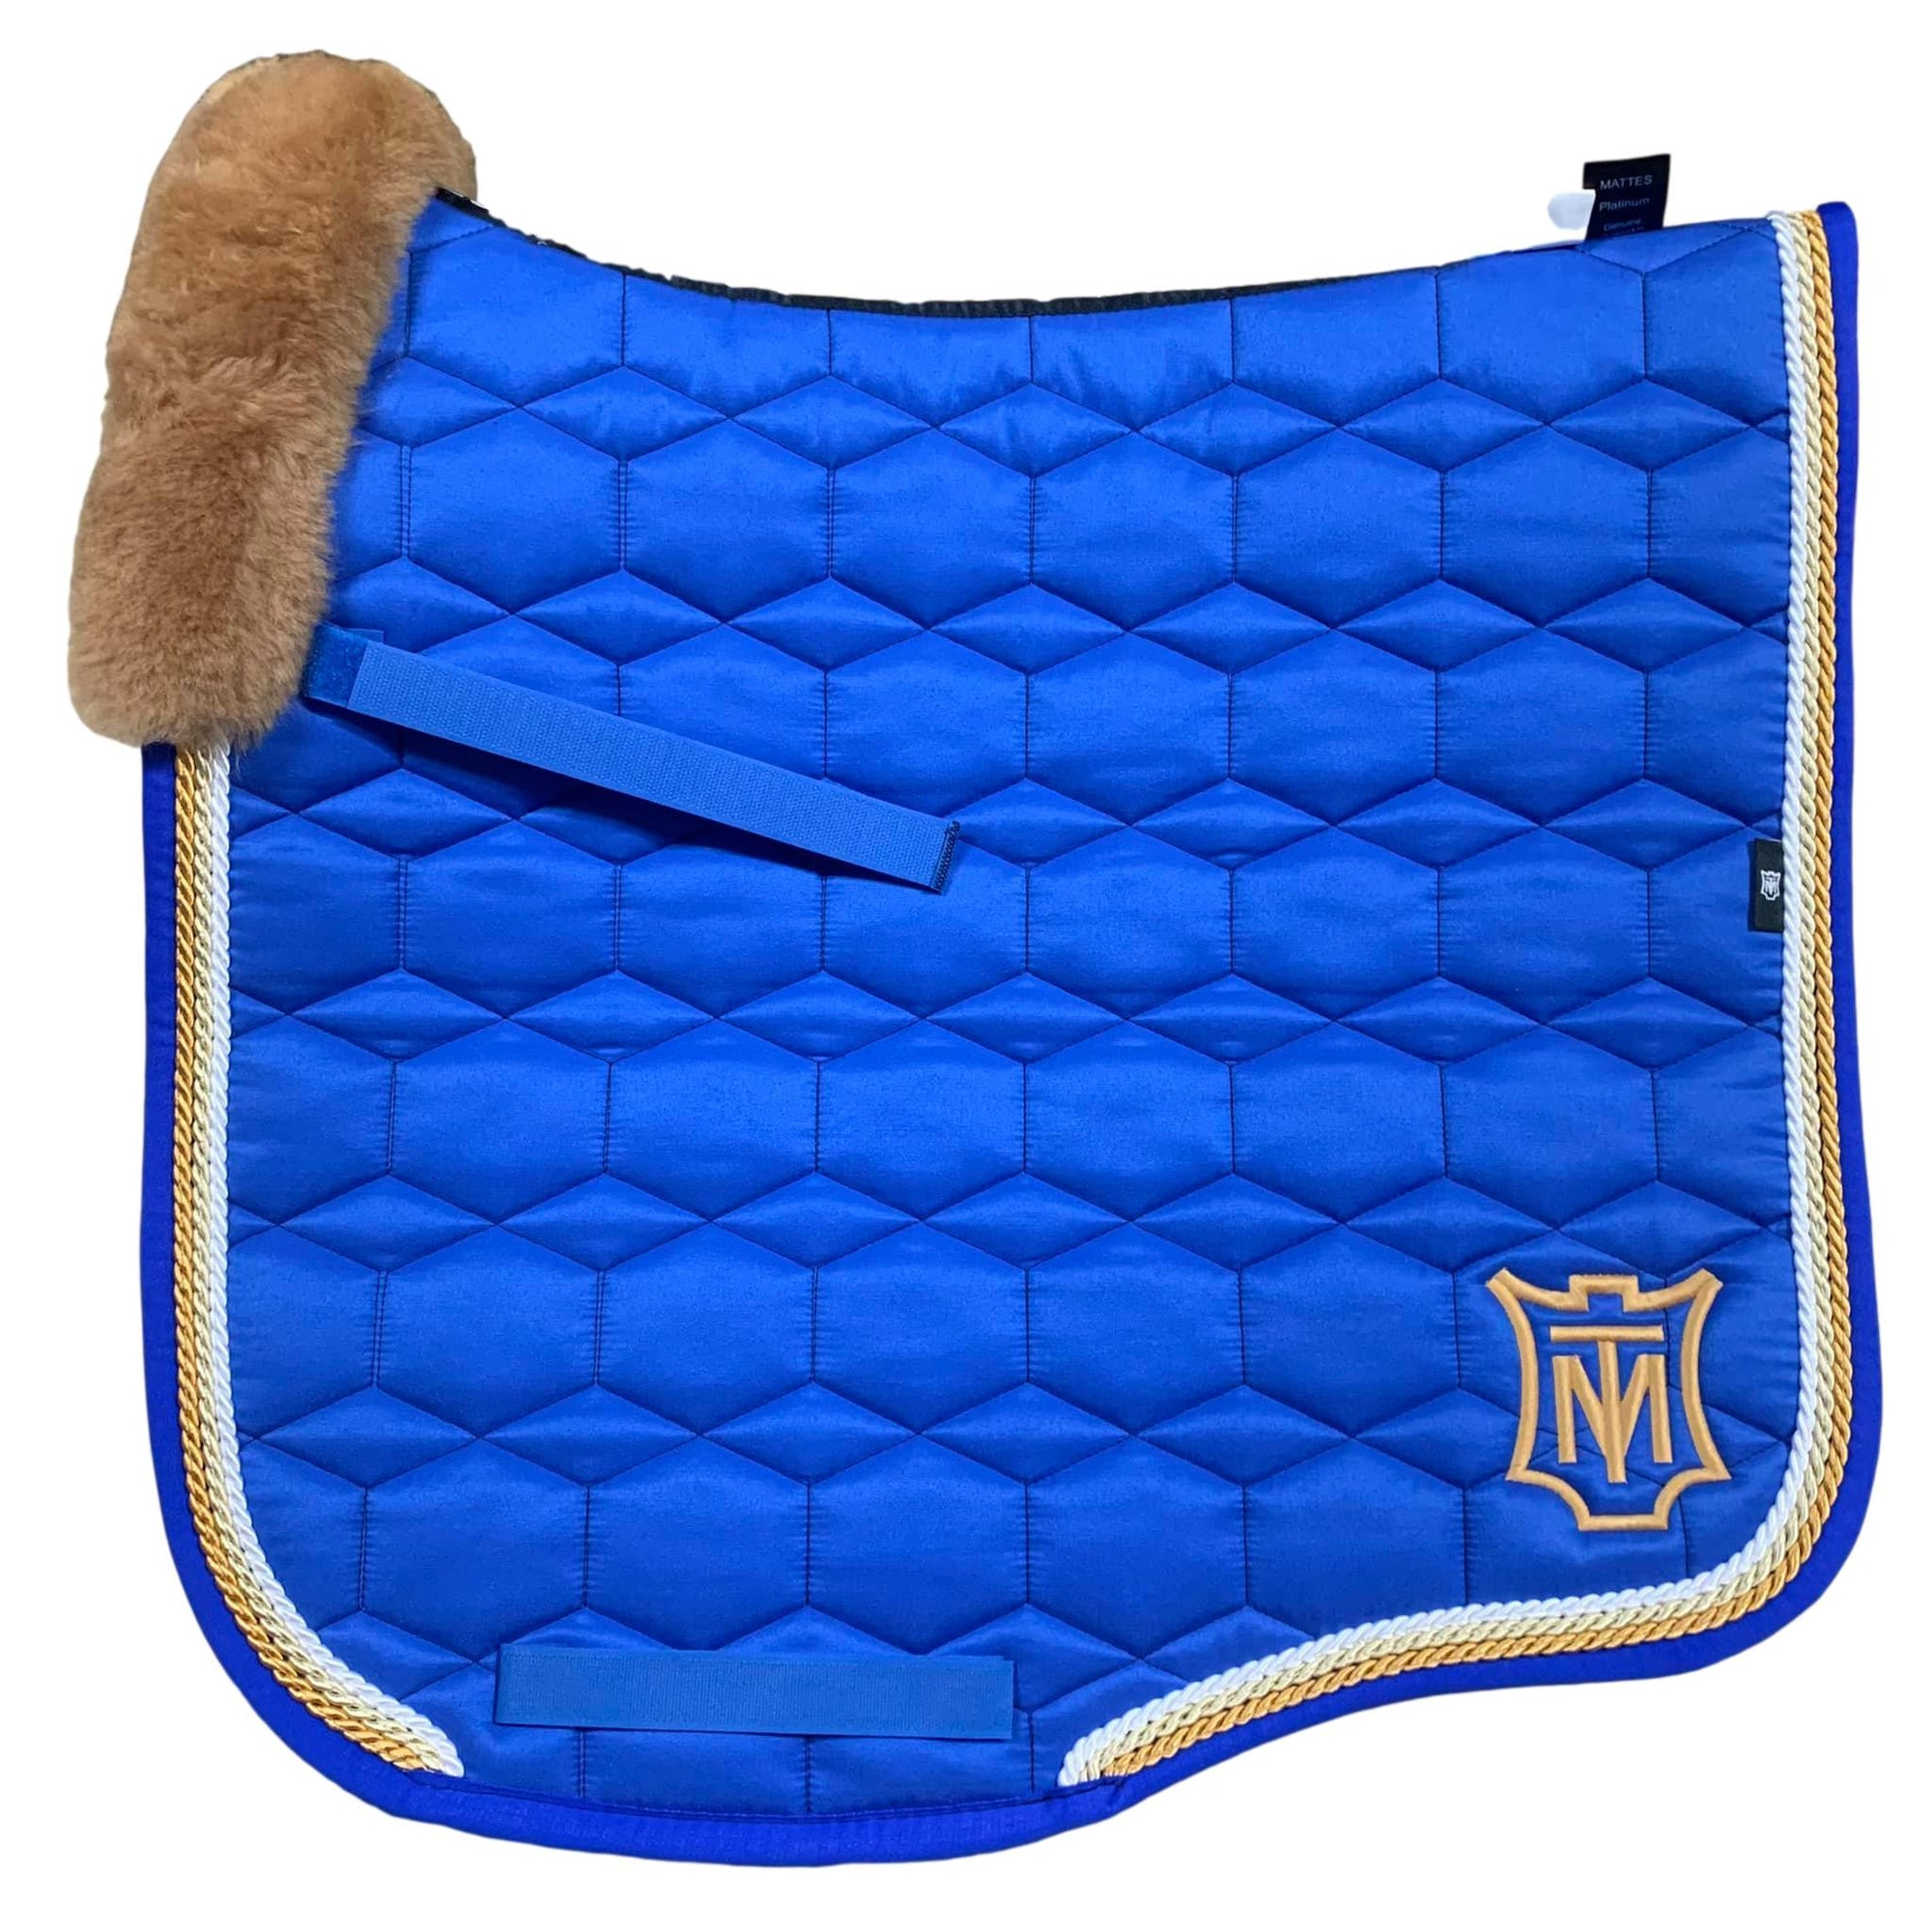 E.A Mattes Instock - L Size/Top Fleece - Royal Blue/Honey